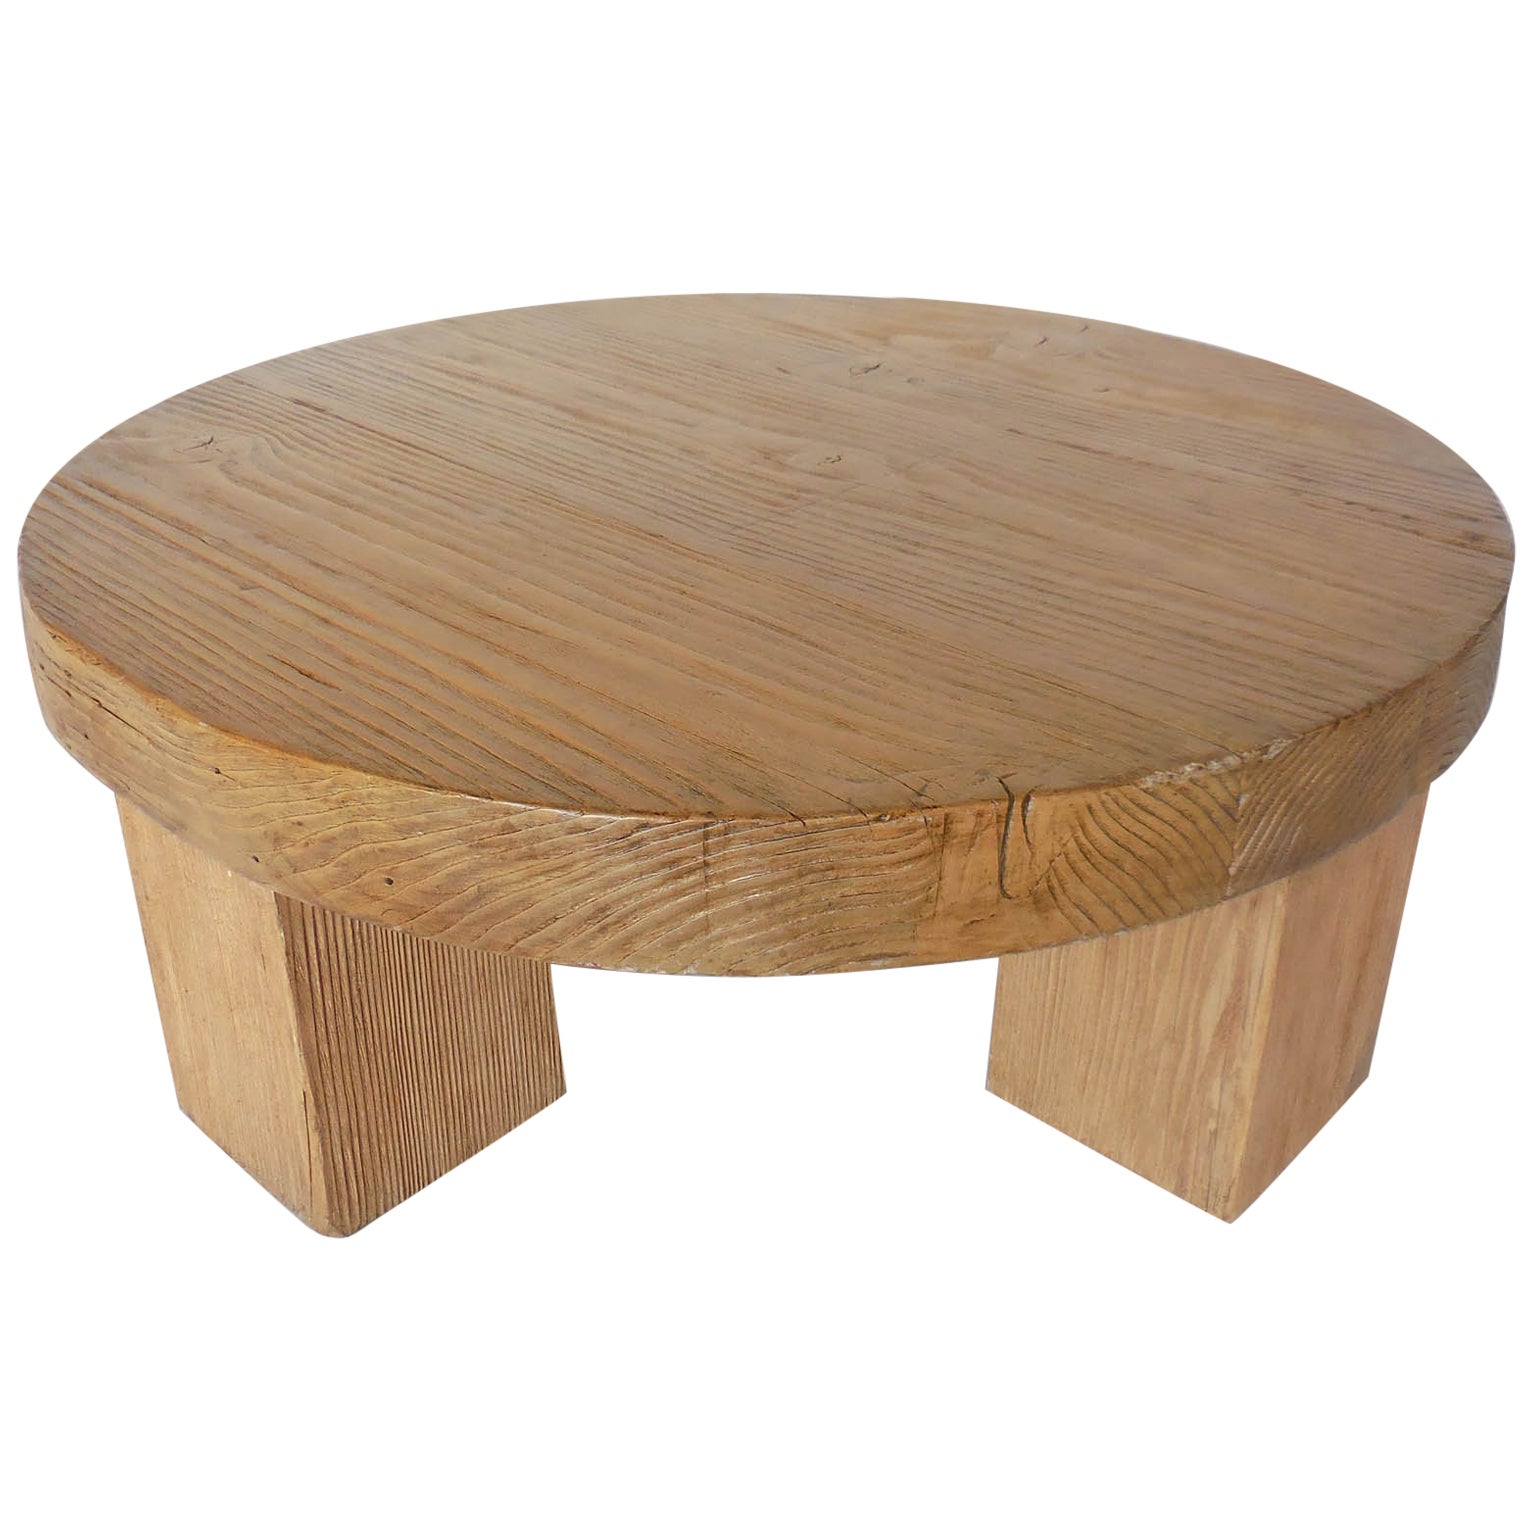 Low Round Wood Coffee Table.Reclaimed Wood Low Round Coffee Table By Dos Gallos Studio